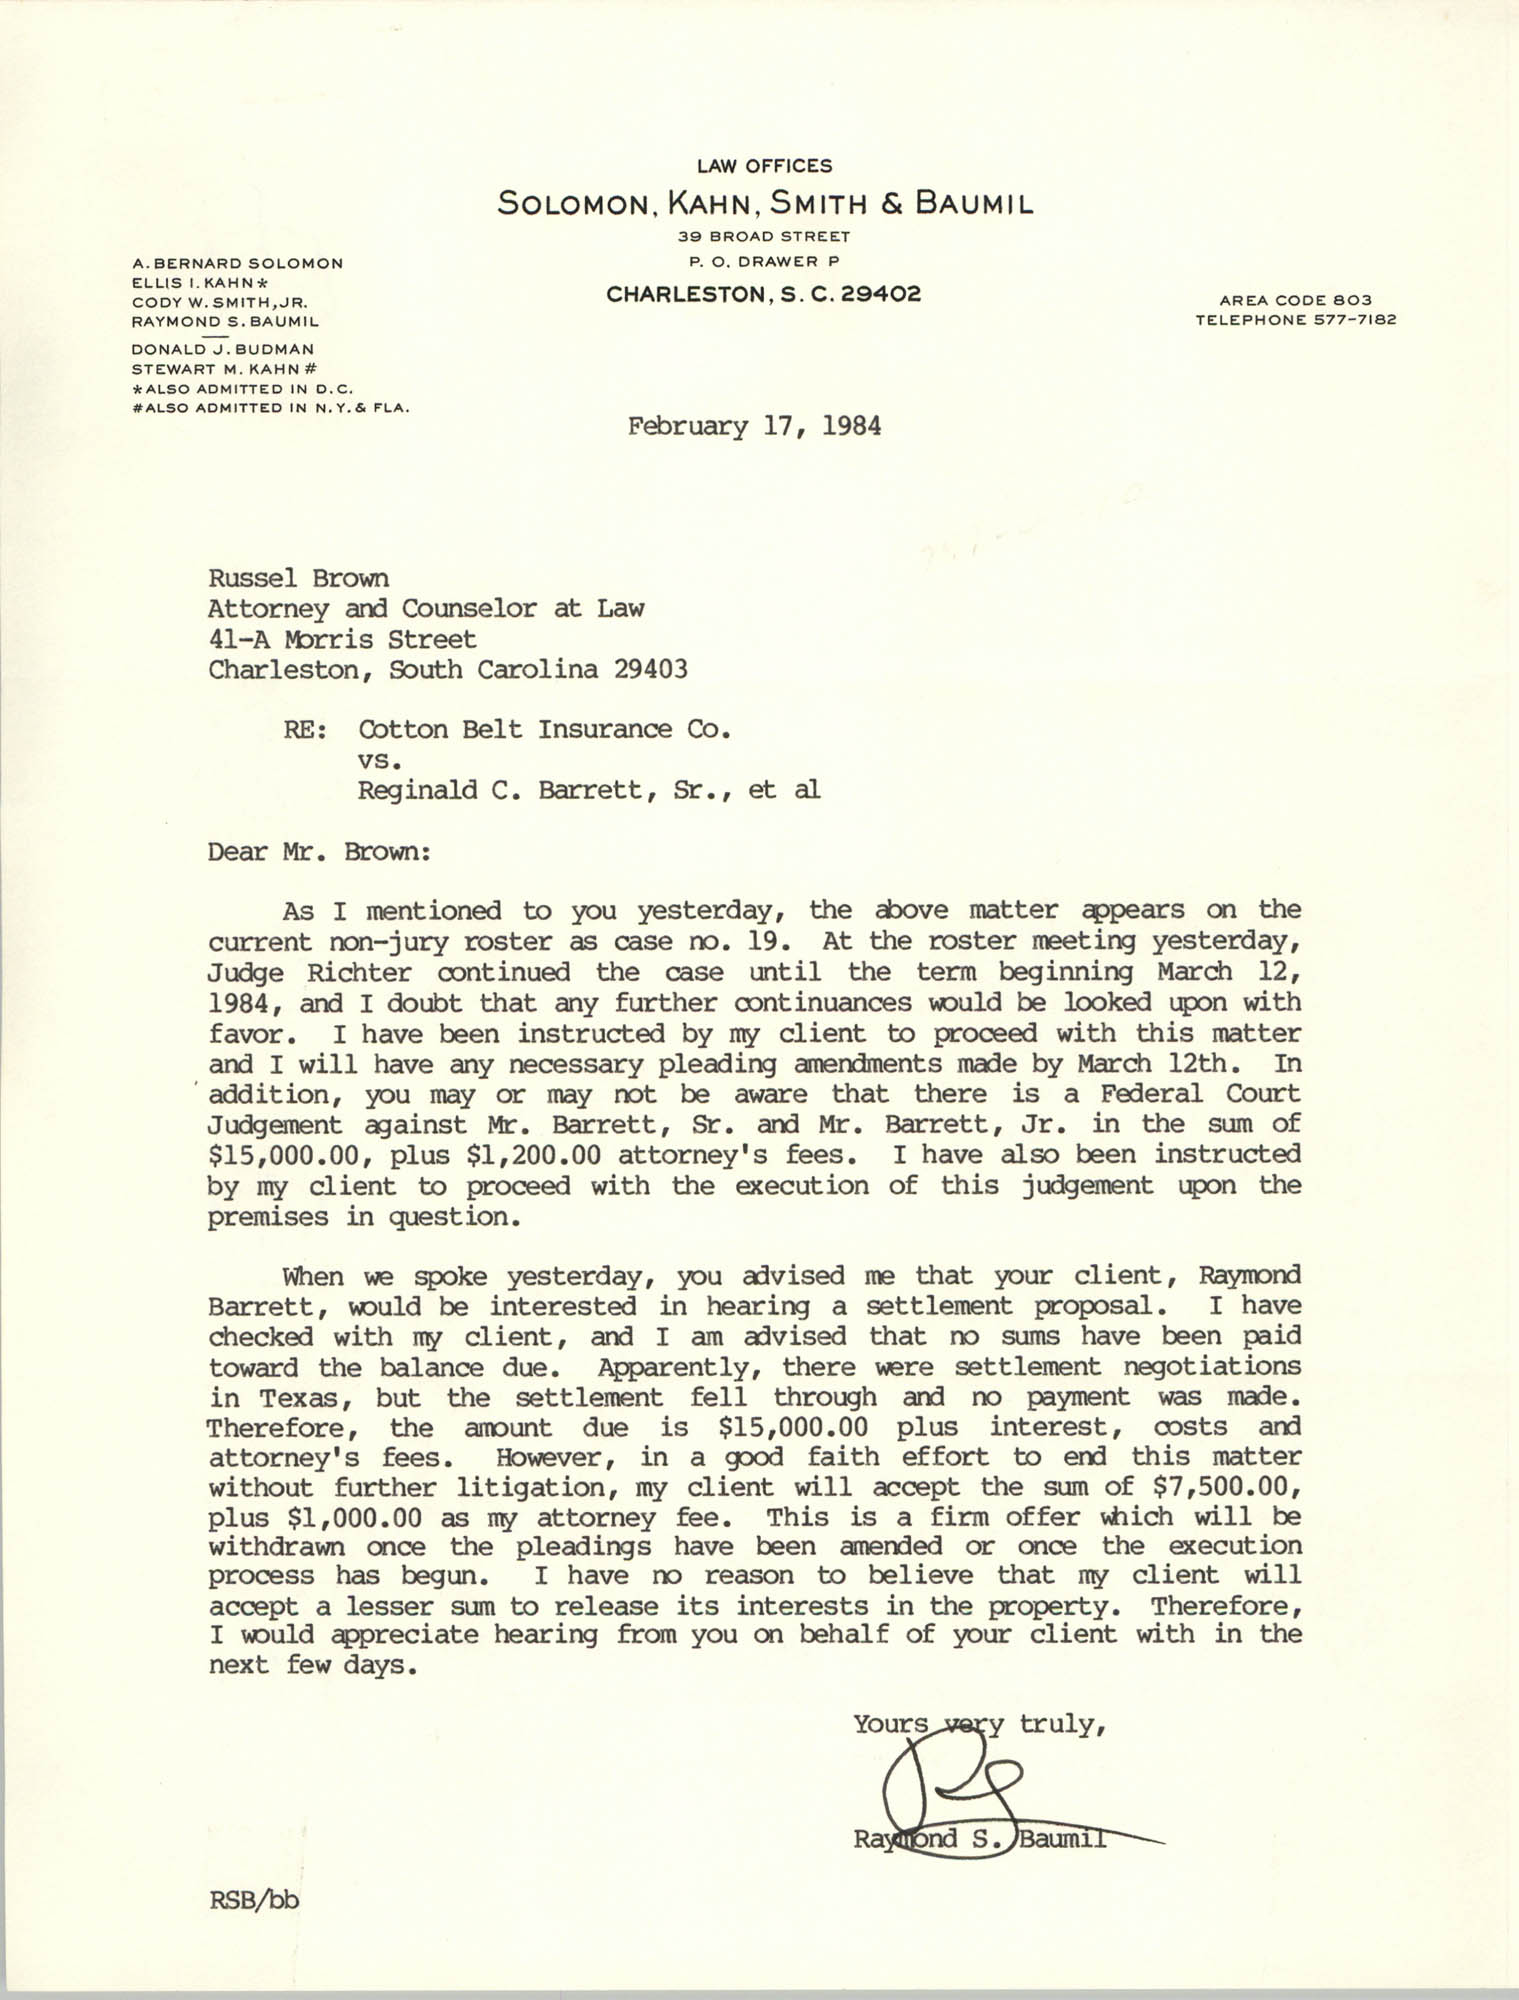 Letter from Raymond S. Baumil to Russell Brown, February 17, 1984